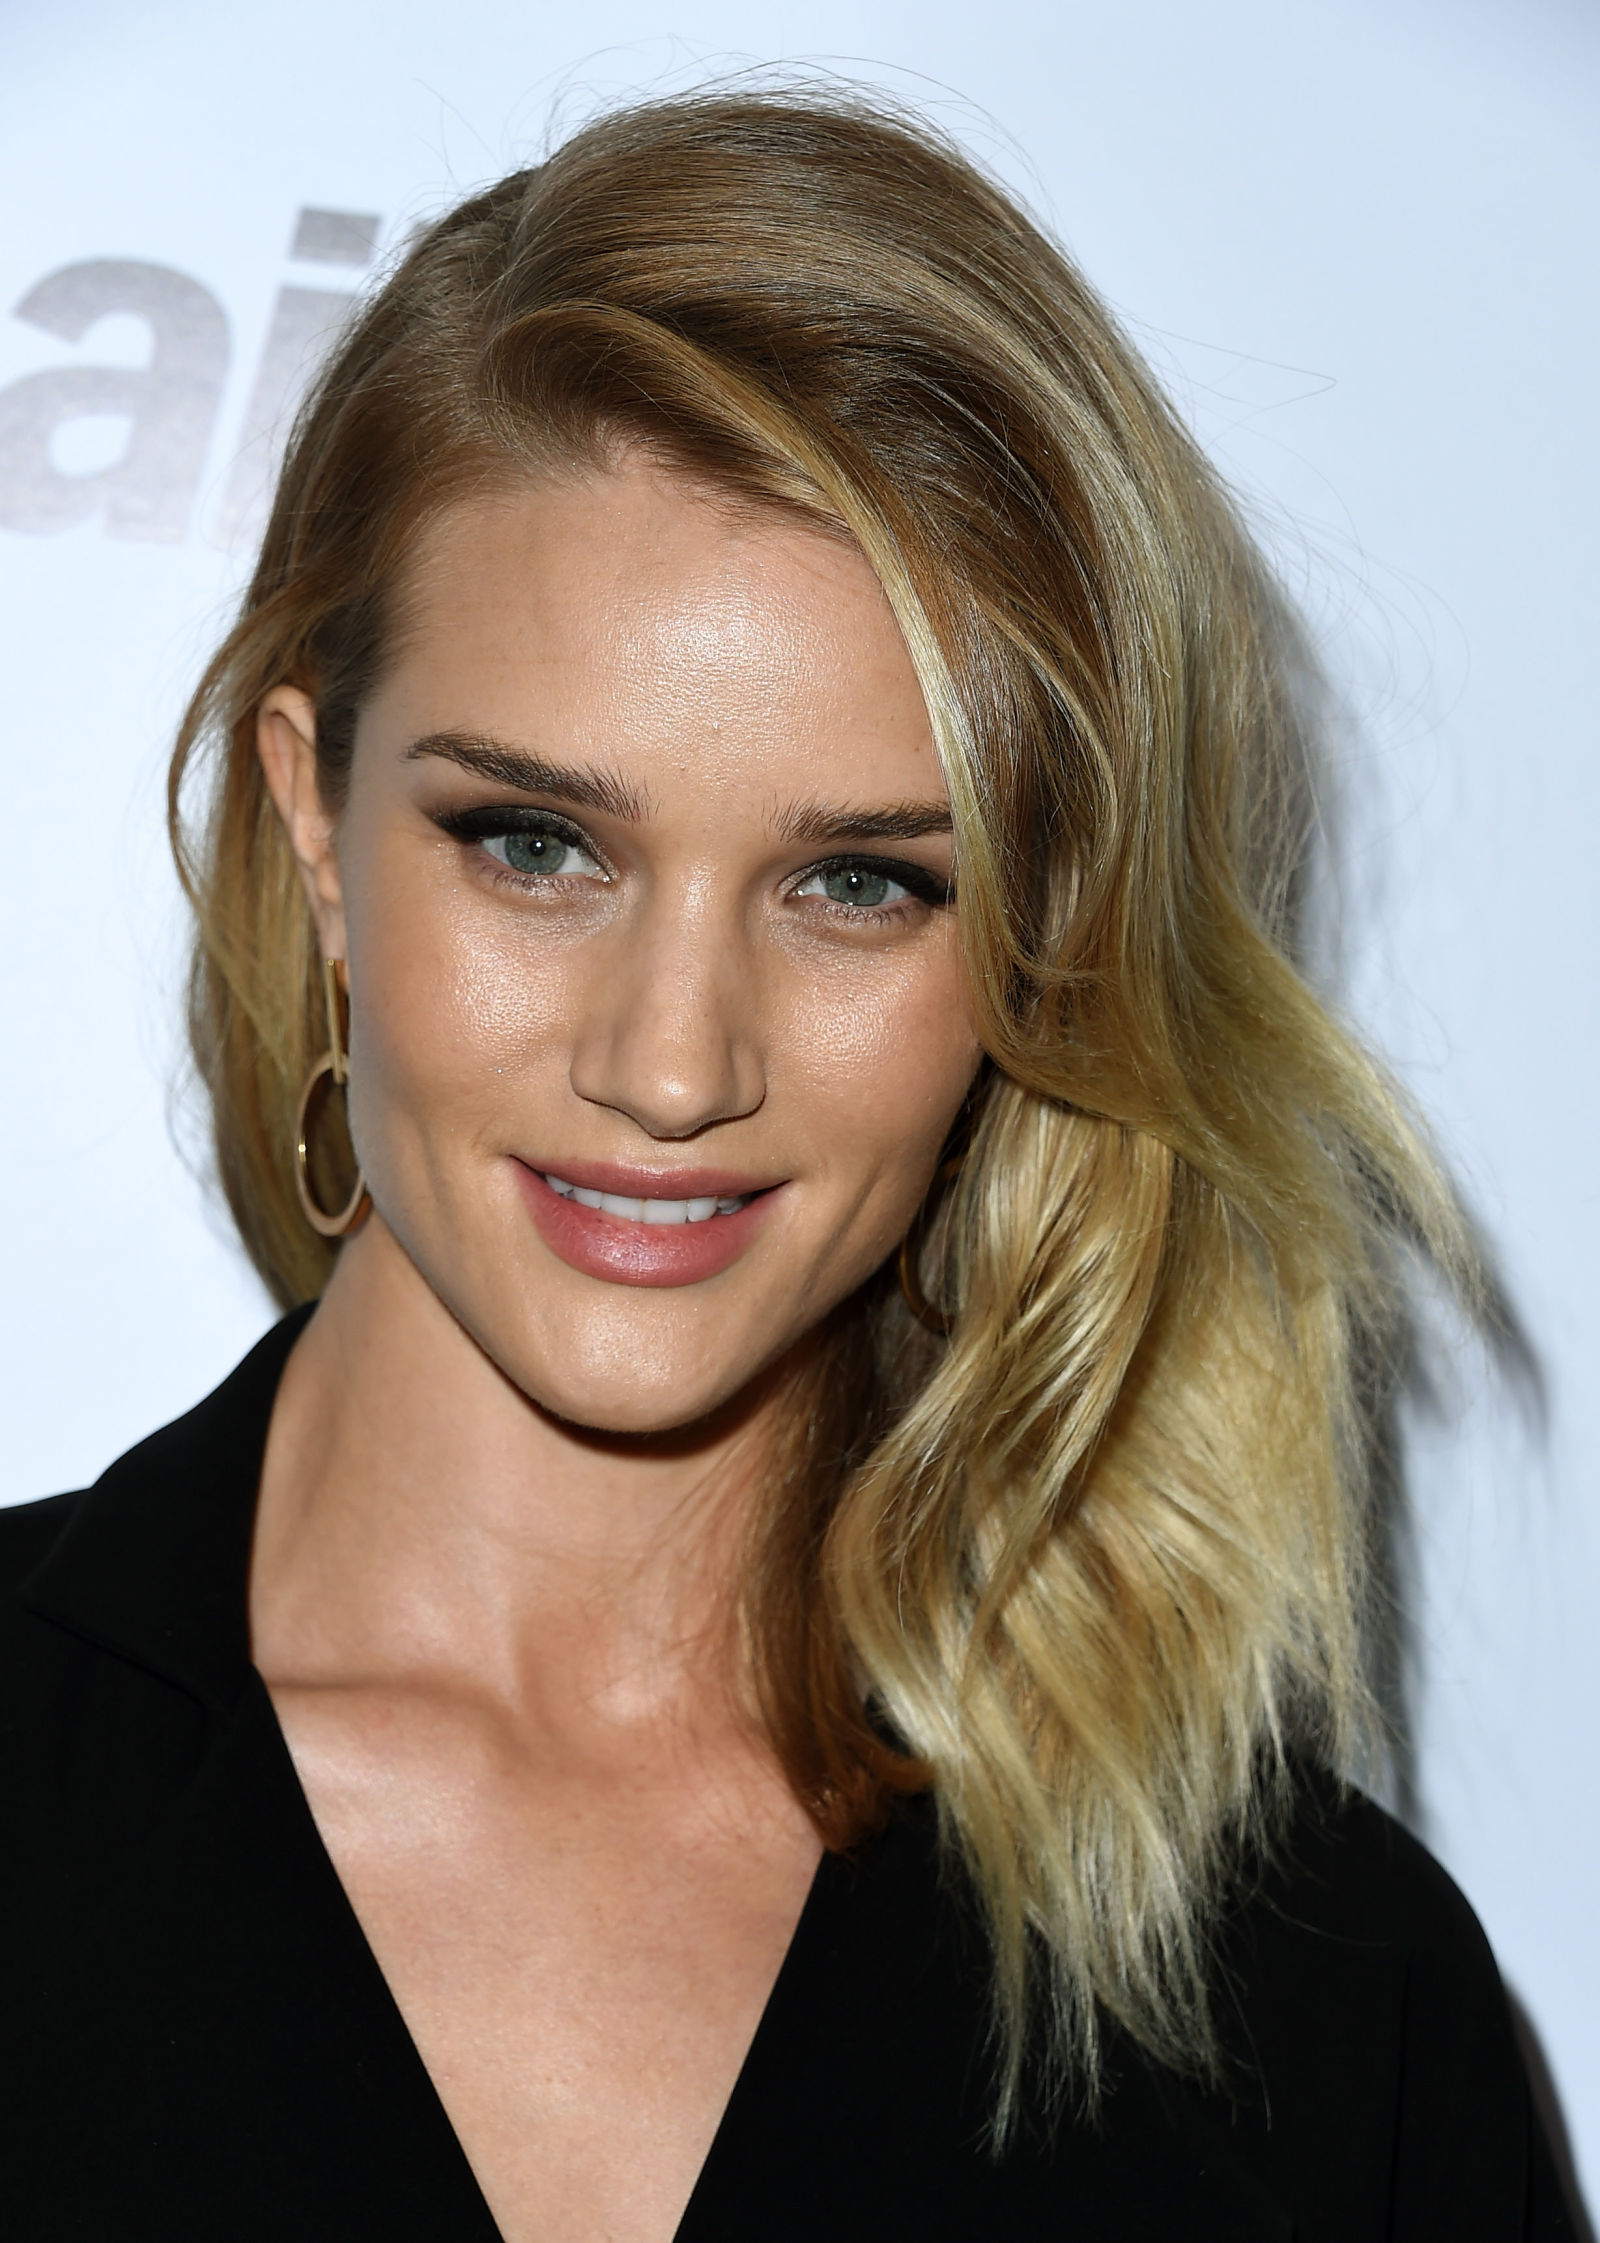 Square Face Shape Hairstyles The 10 Best Hairstyles For Square Faces